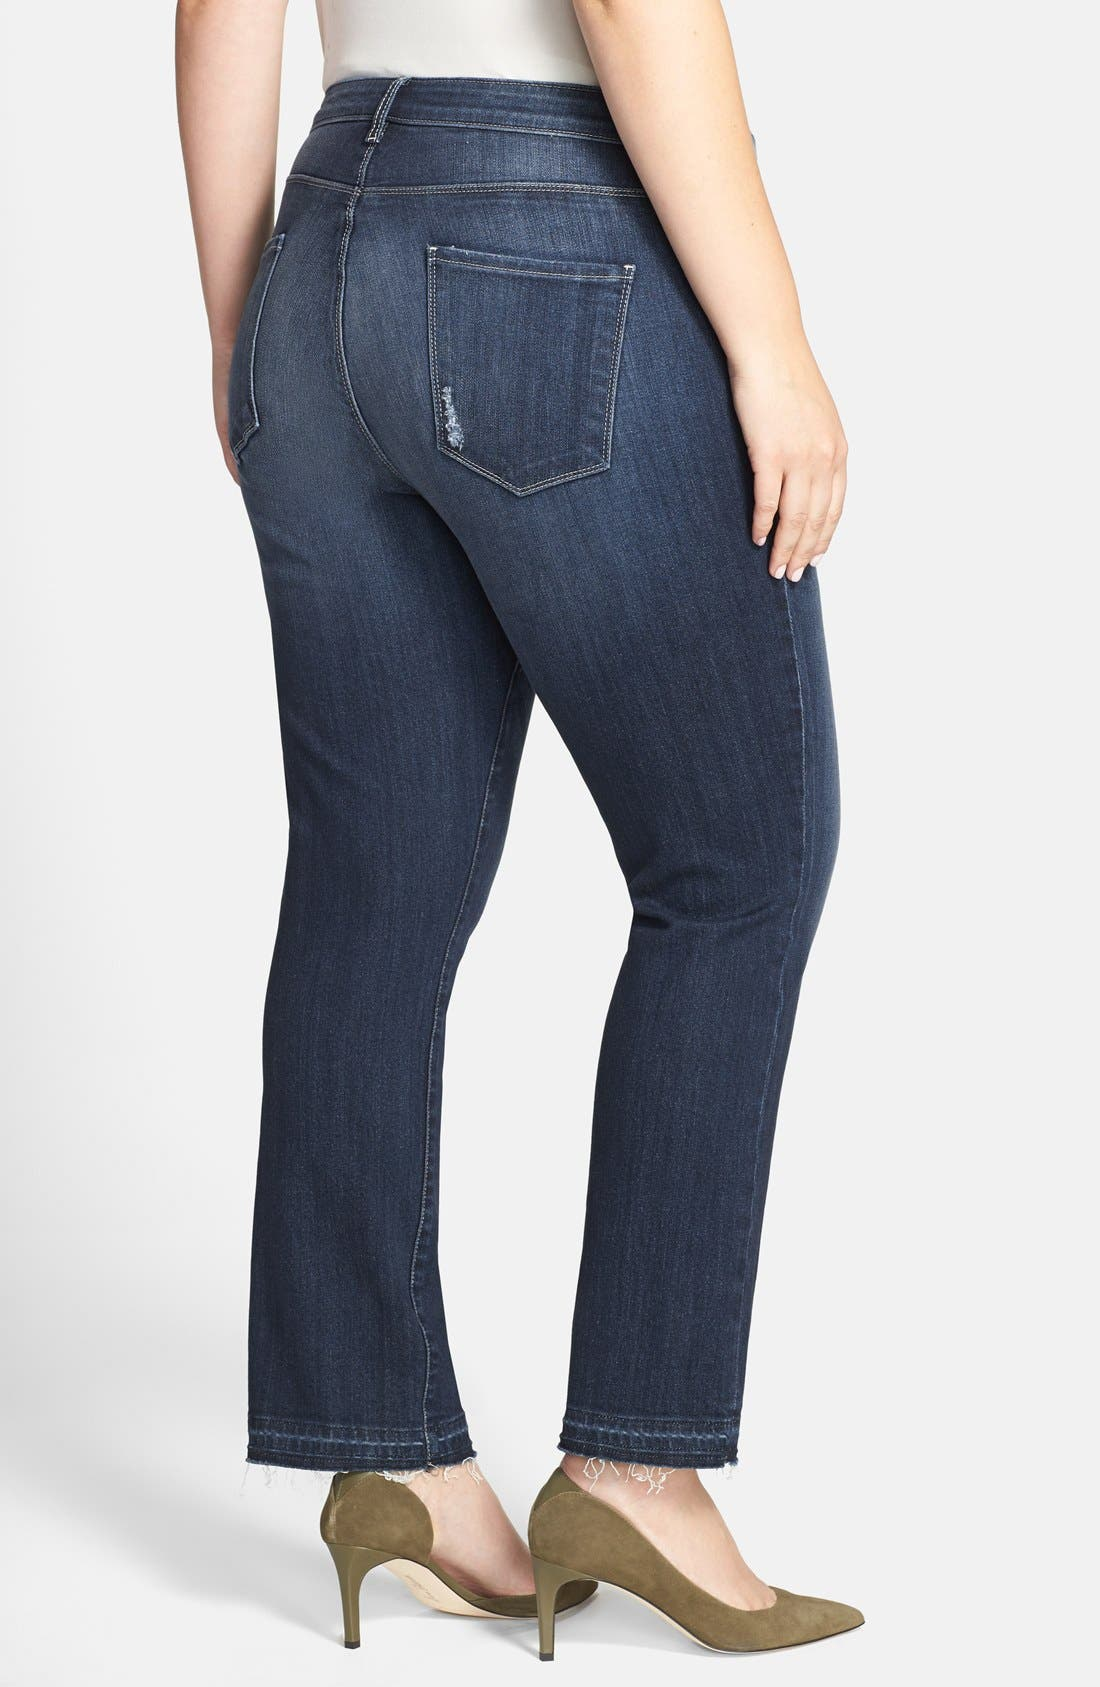 Alternate Image 2  - KUT from the Kloth 'Reese' Released Hem Distressed Stretch Ankle Jeans (Hard) (Plus Size)